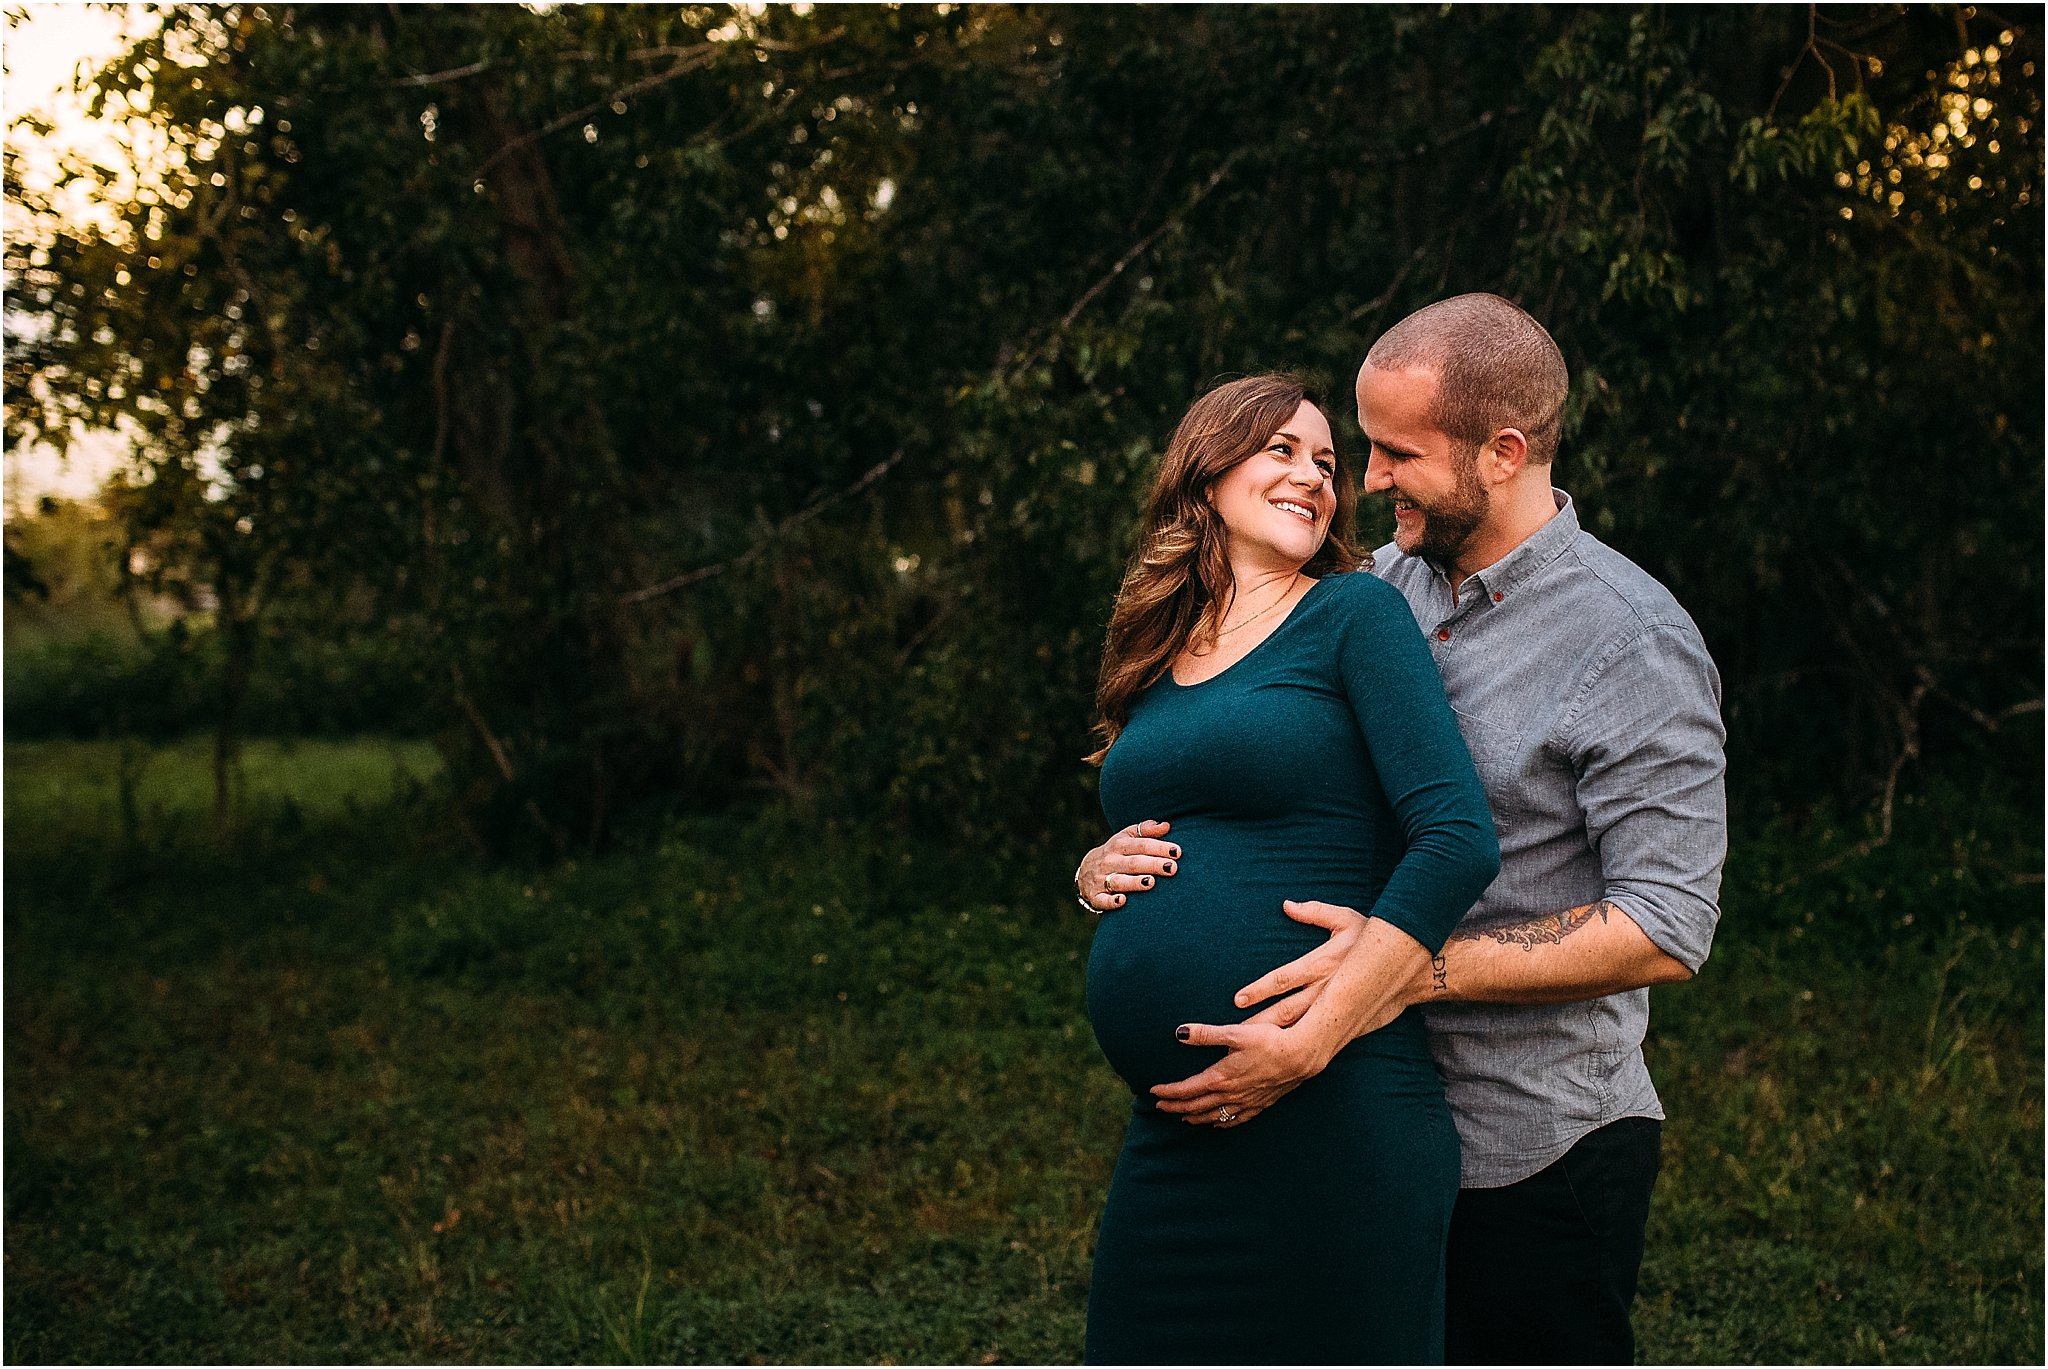 Ashley_Rogers_Photography_Orlando_Non-Posed_Newborn_Family_Lifestyle_Photographer_0617.jpg